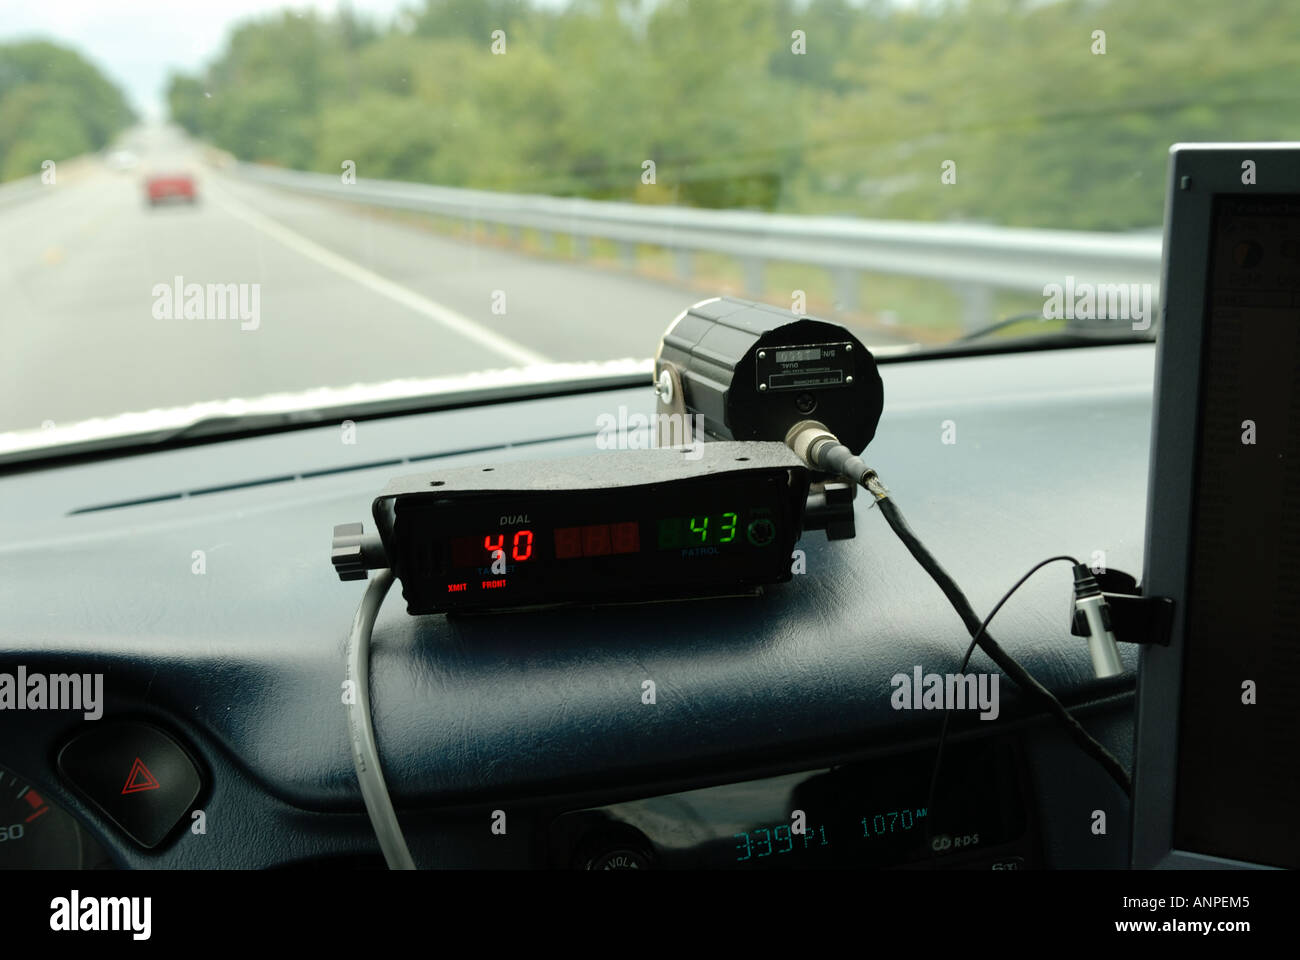 police speed radar unit in police car driving on 2 lane road stock photo 8901828 alamy. Black Bedroom Furniture Sets. Home Design Ideas